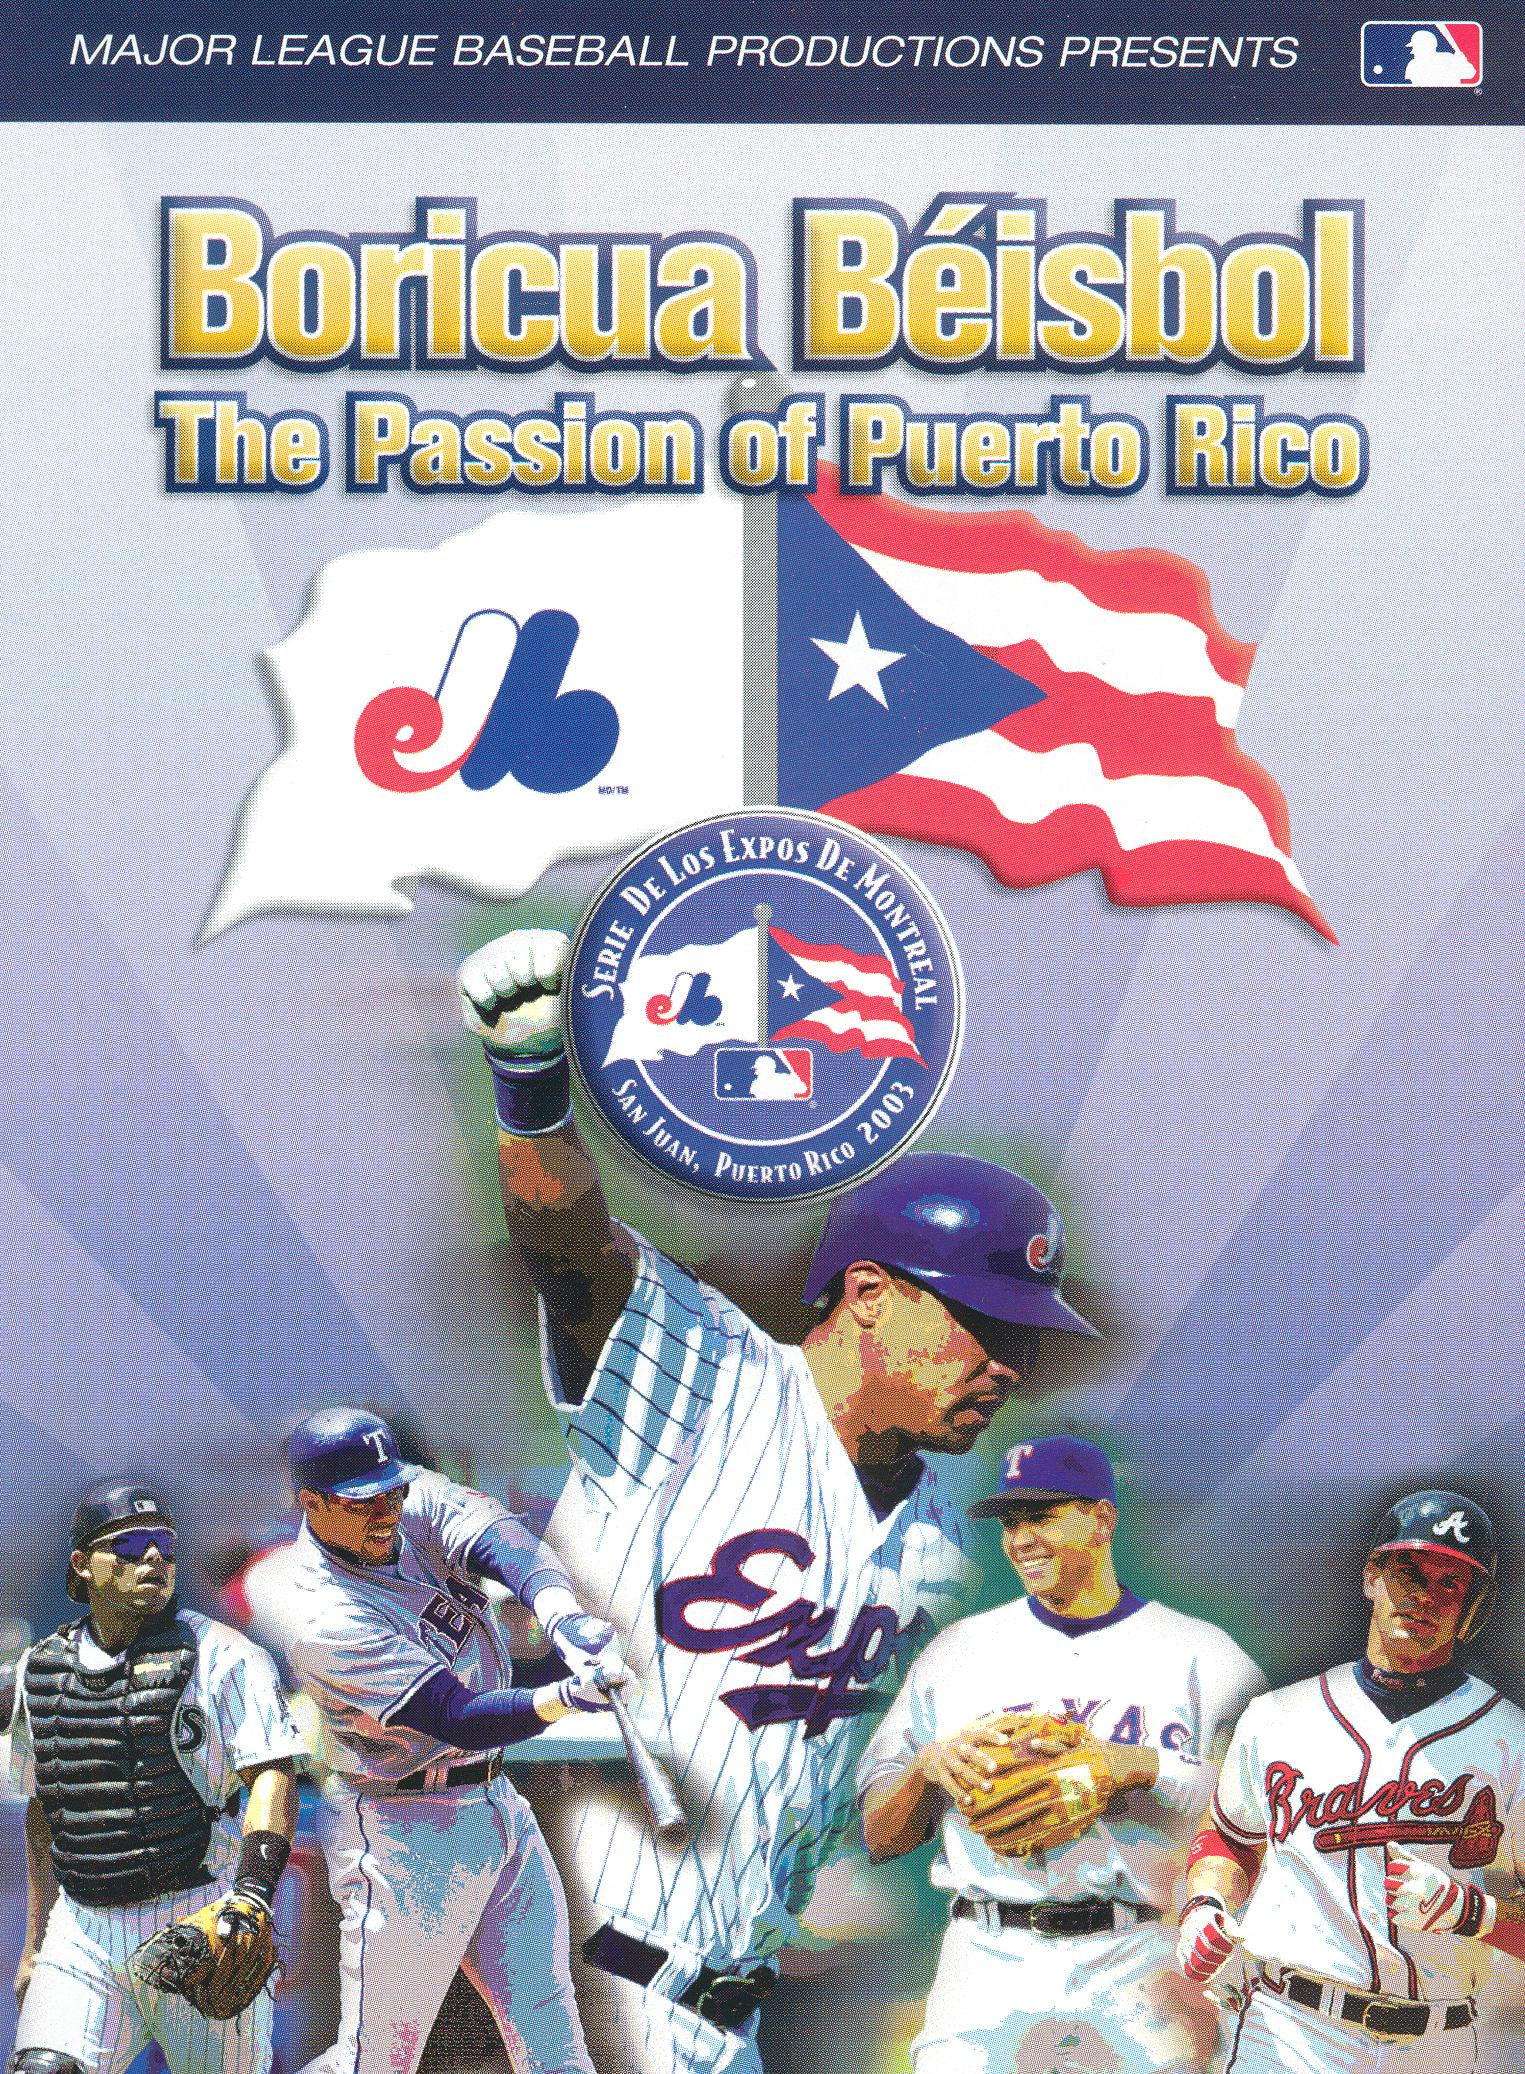 MLB: Boricua Béisbol - The Passion of Puerto Rico